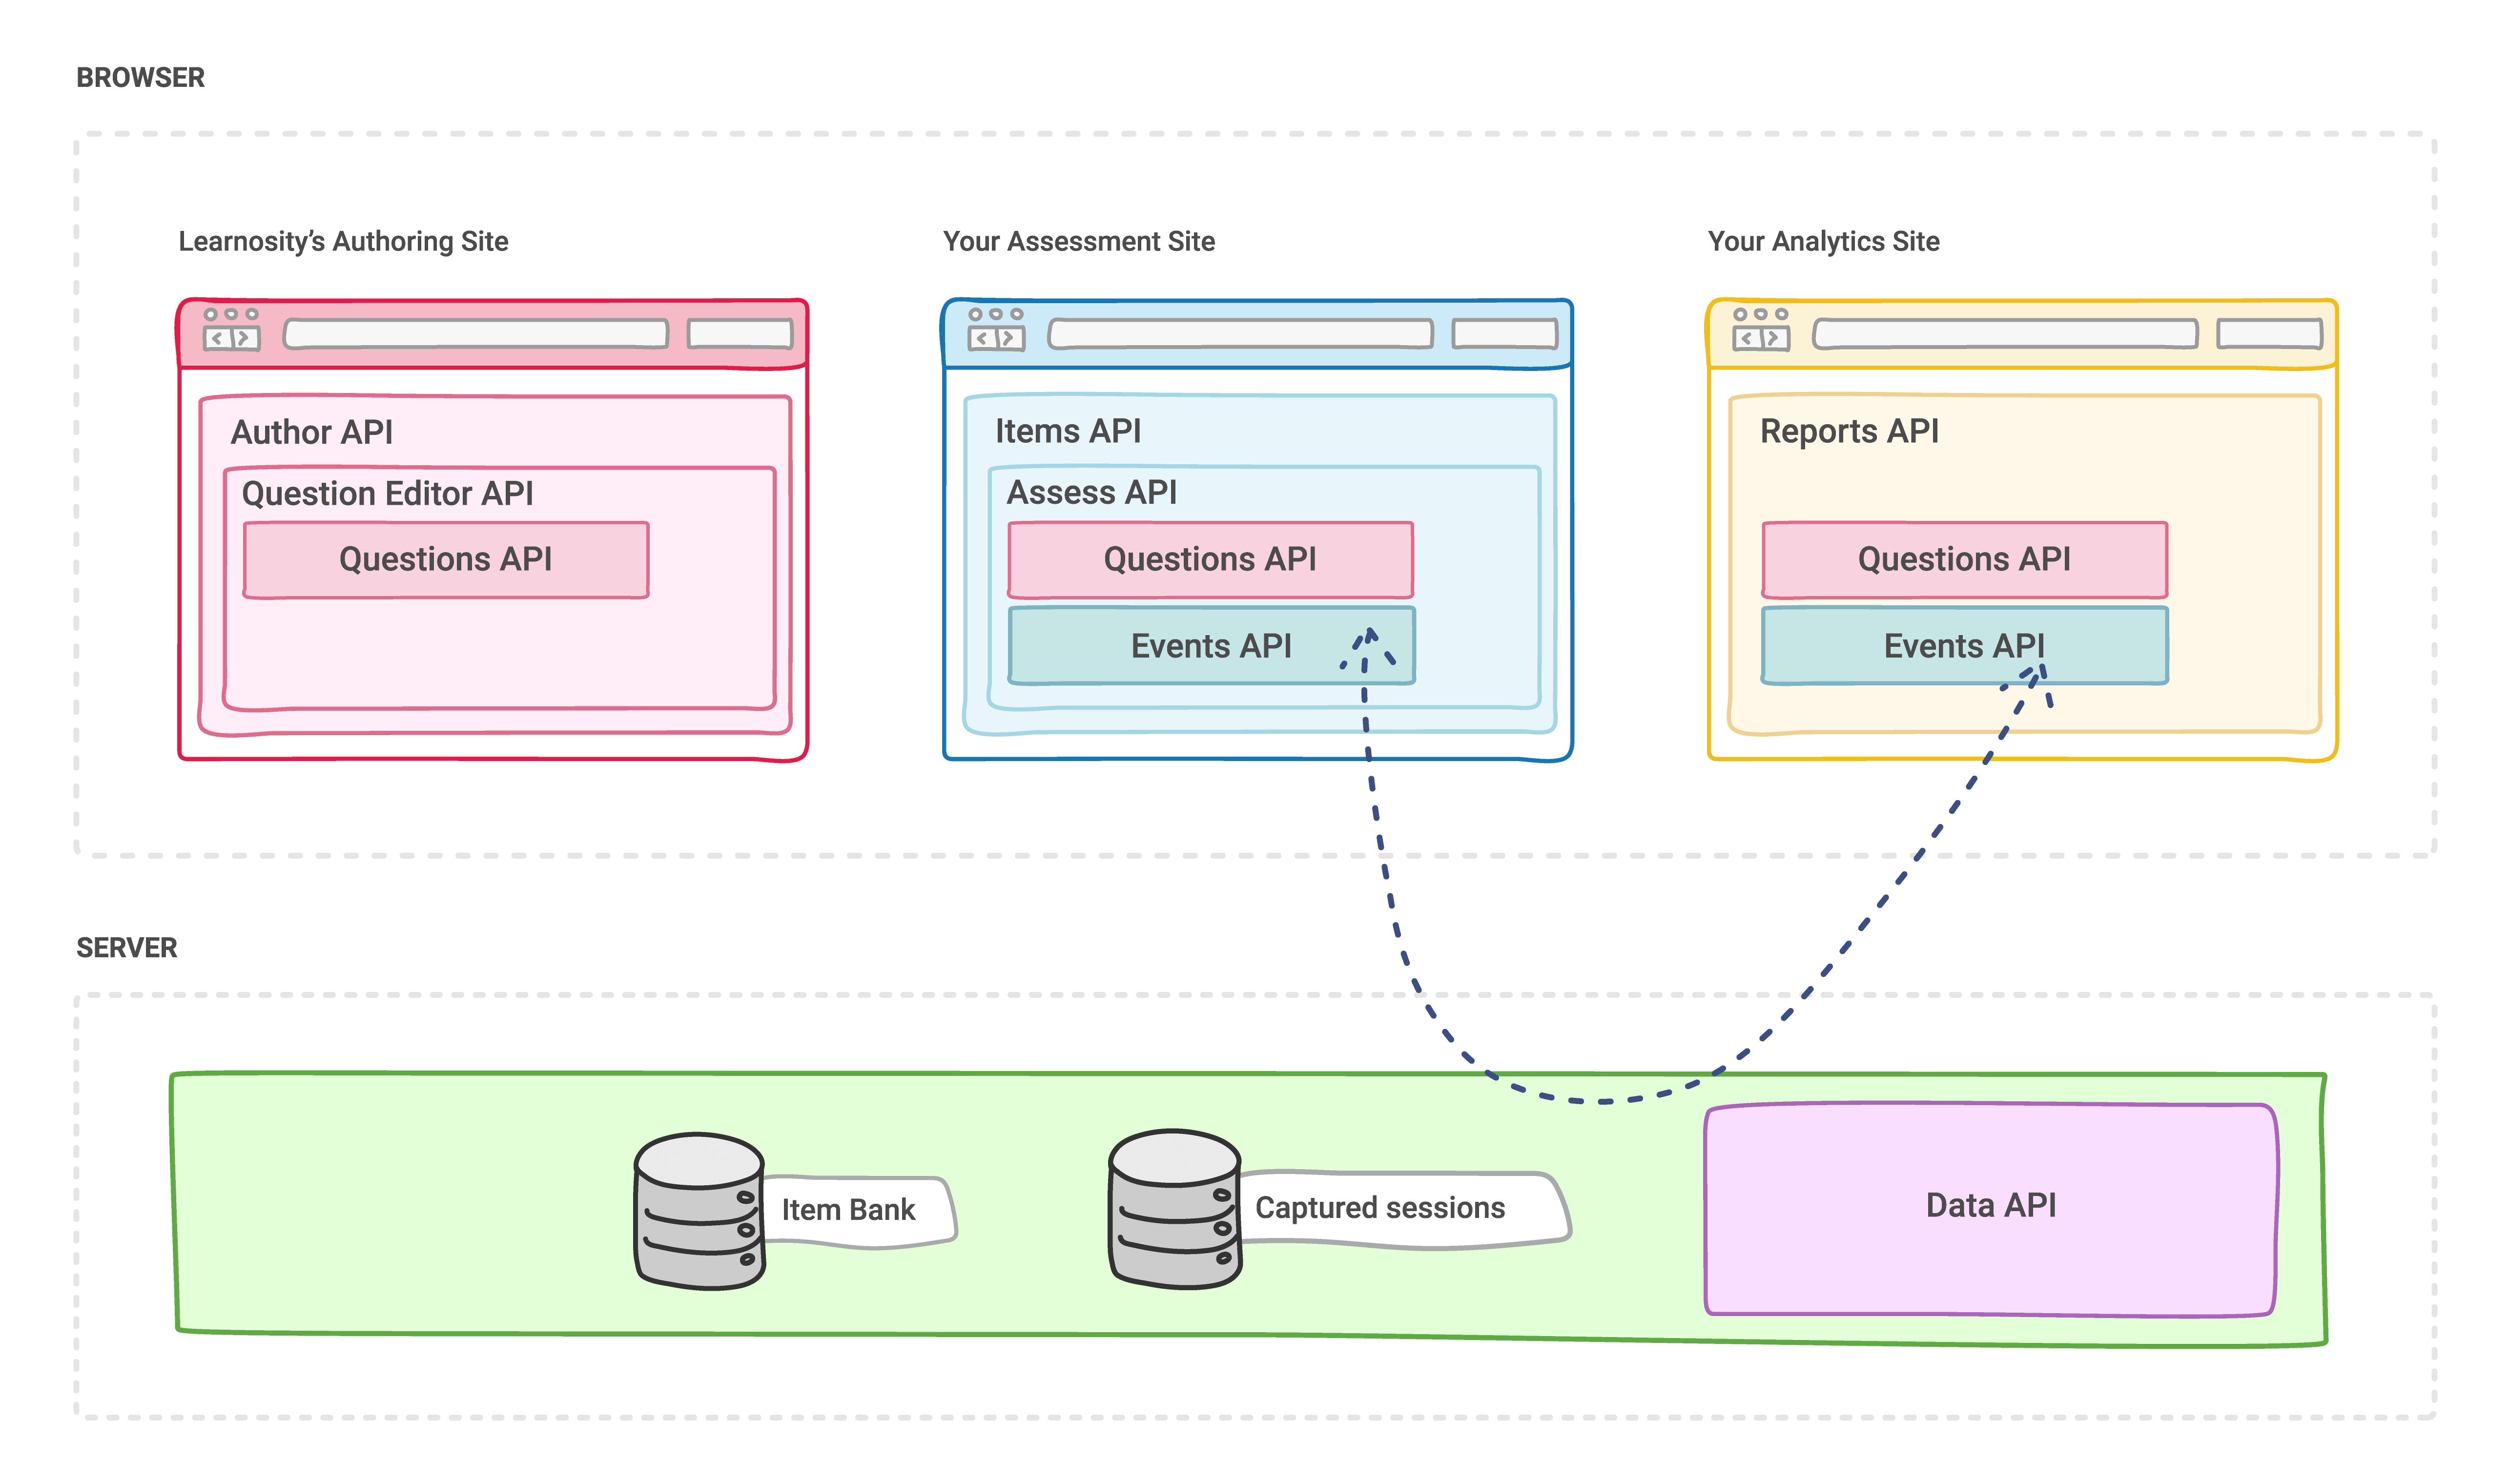 How Learnosity APIs are related